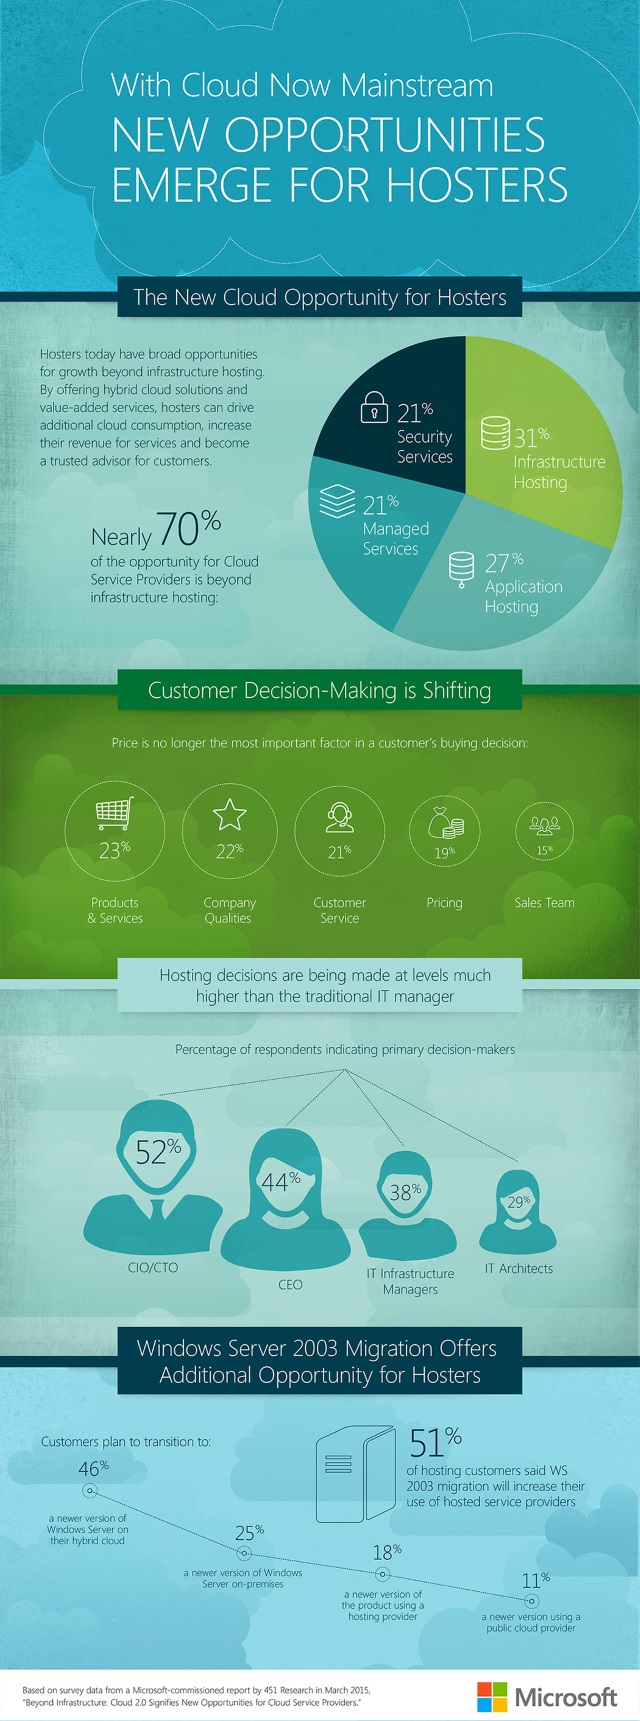 MSFT_2015Hosting_Infographic_FINAL